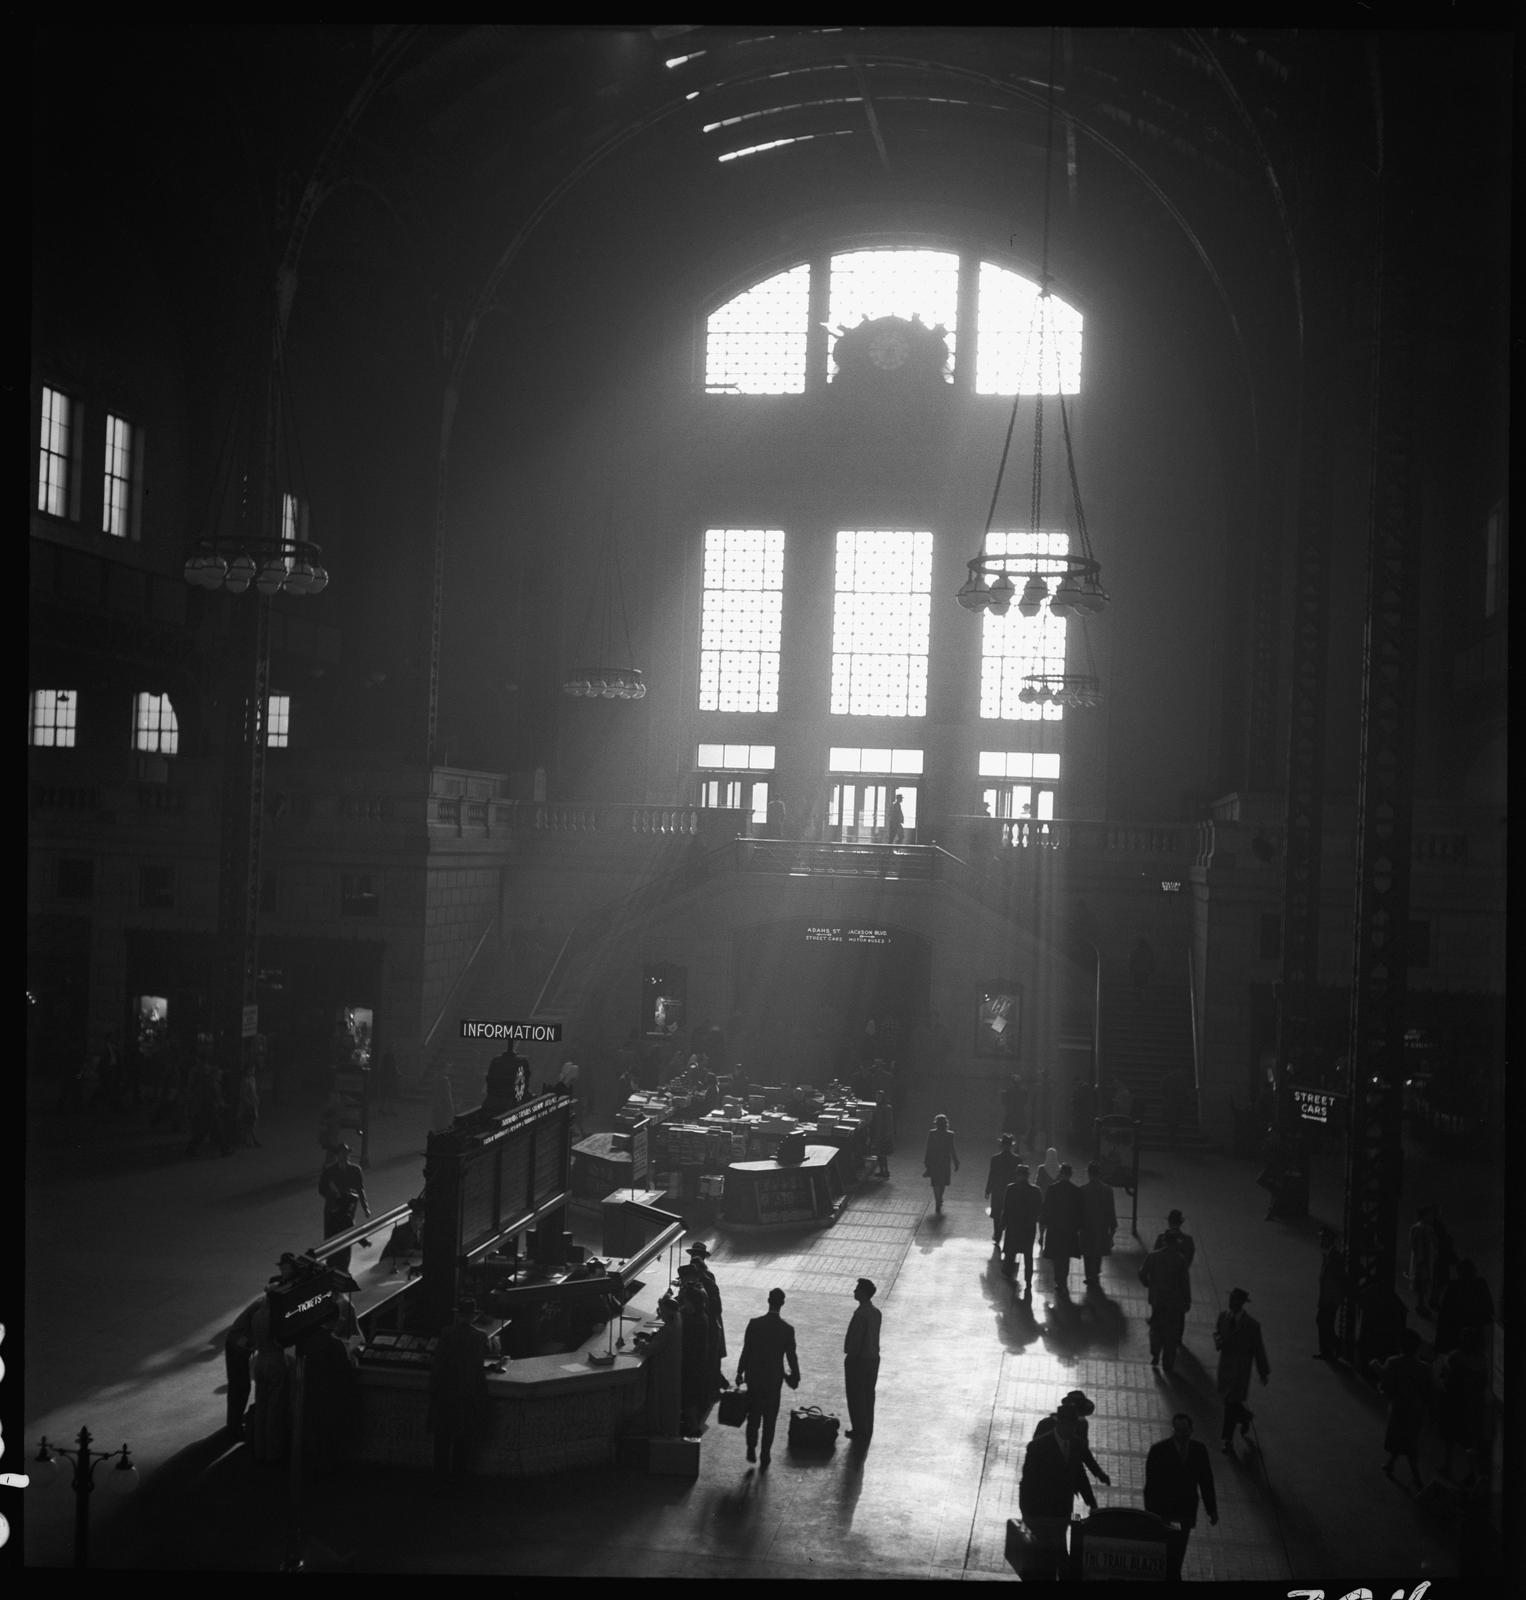 Passengers on concourse, Union Station, Chicago, May 1948